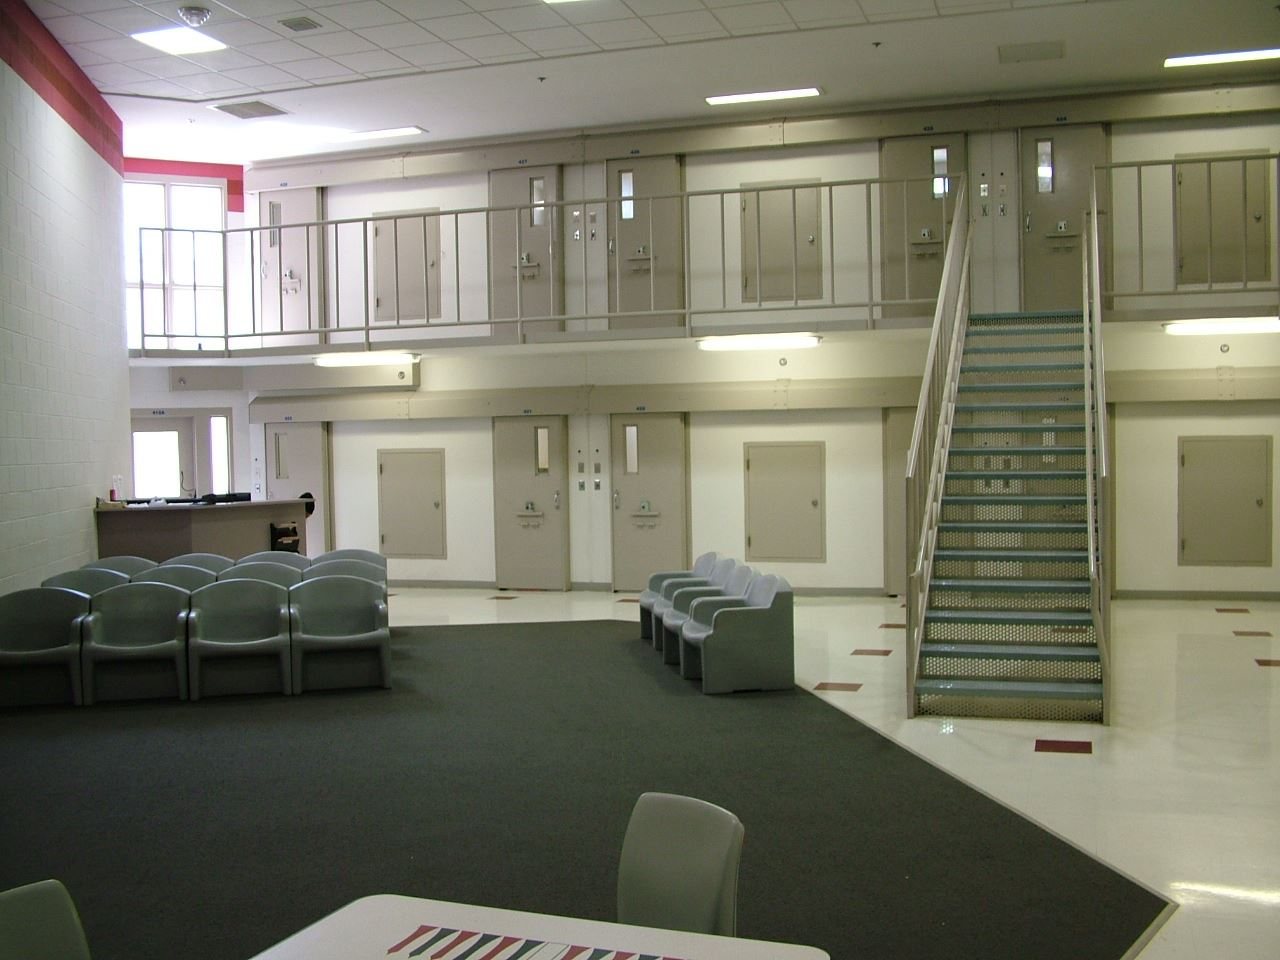 Jail Cell Block